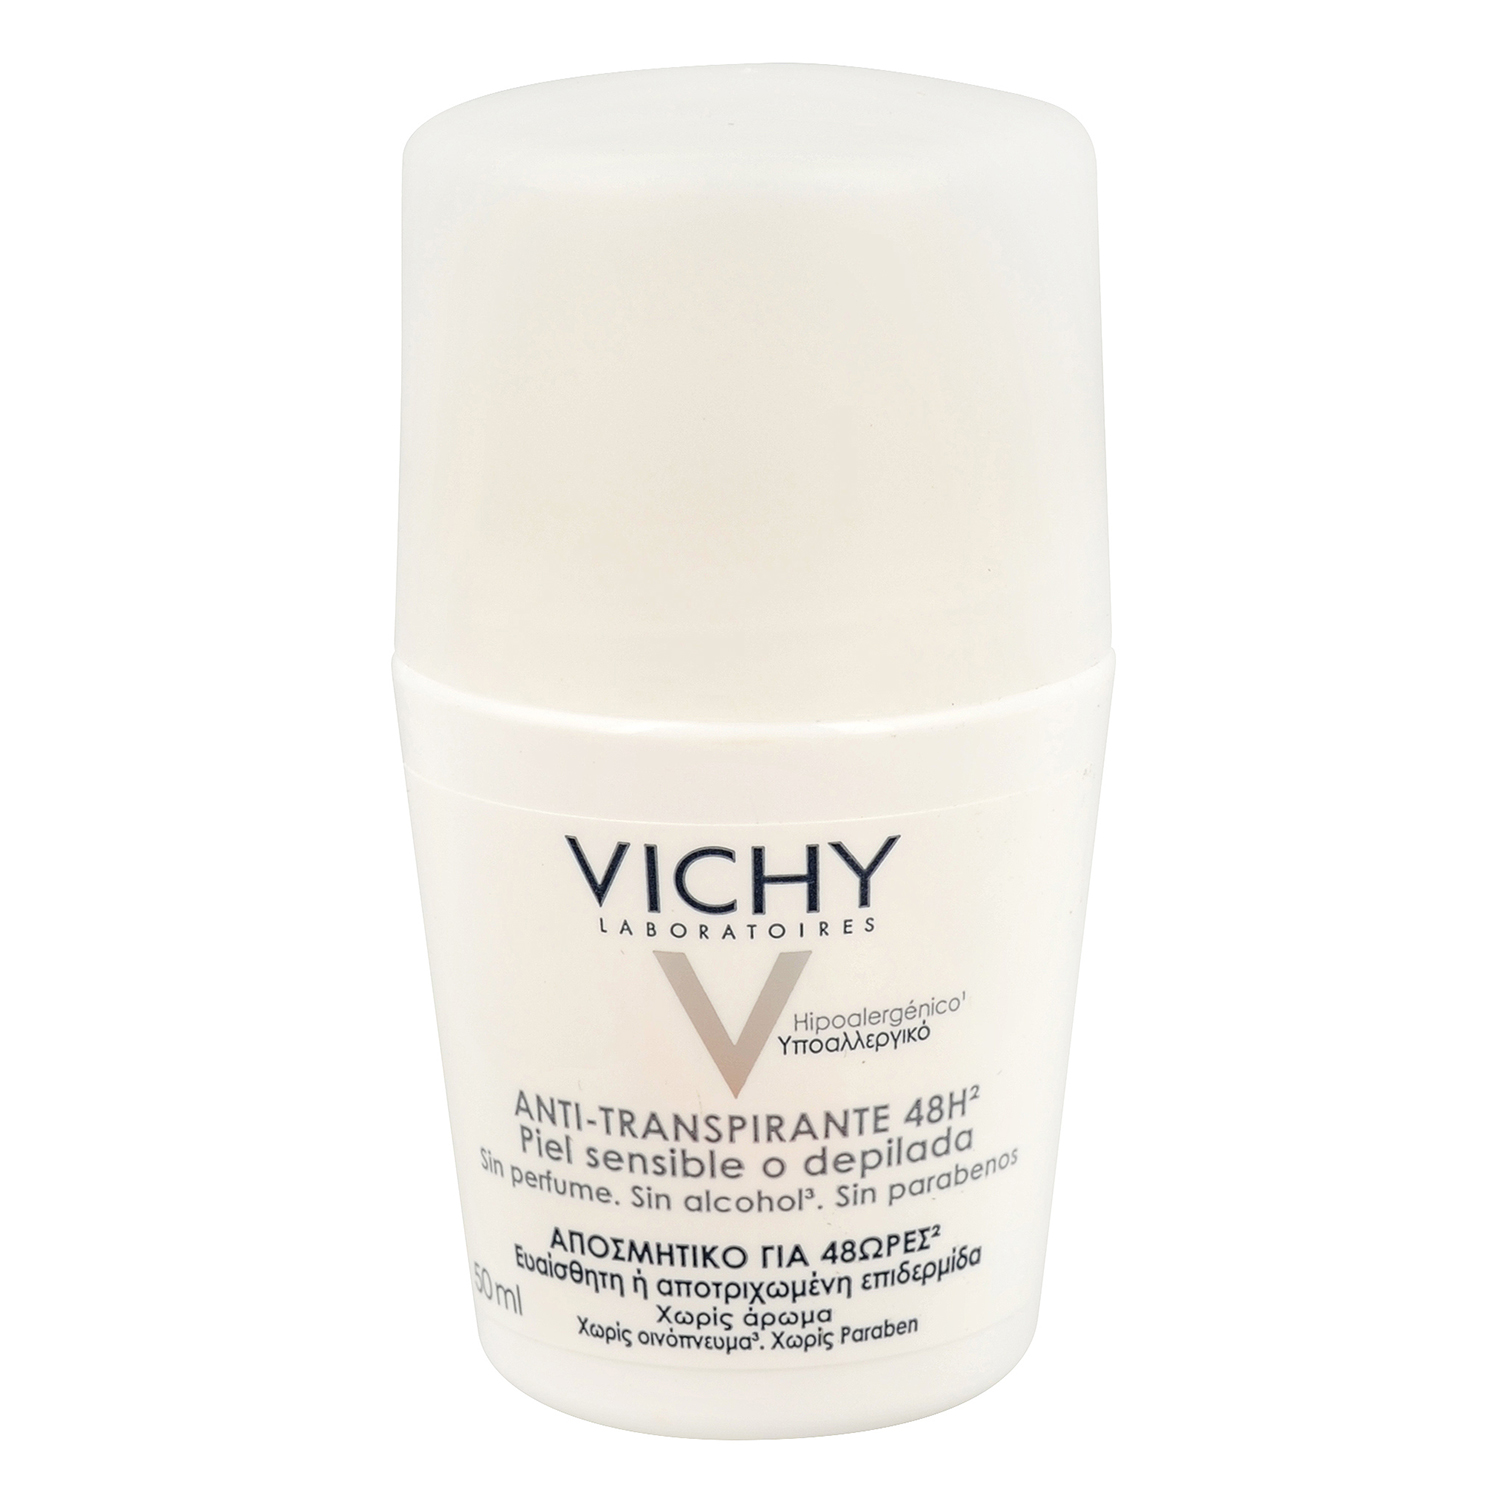 Desodorante roll-on anti-transpirante piel sensible o depilada 48h. Vichy 50 ml.